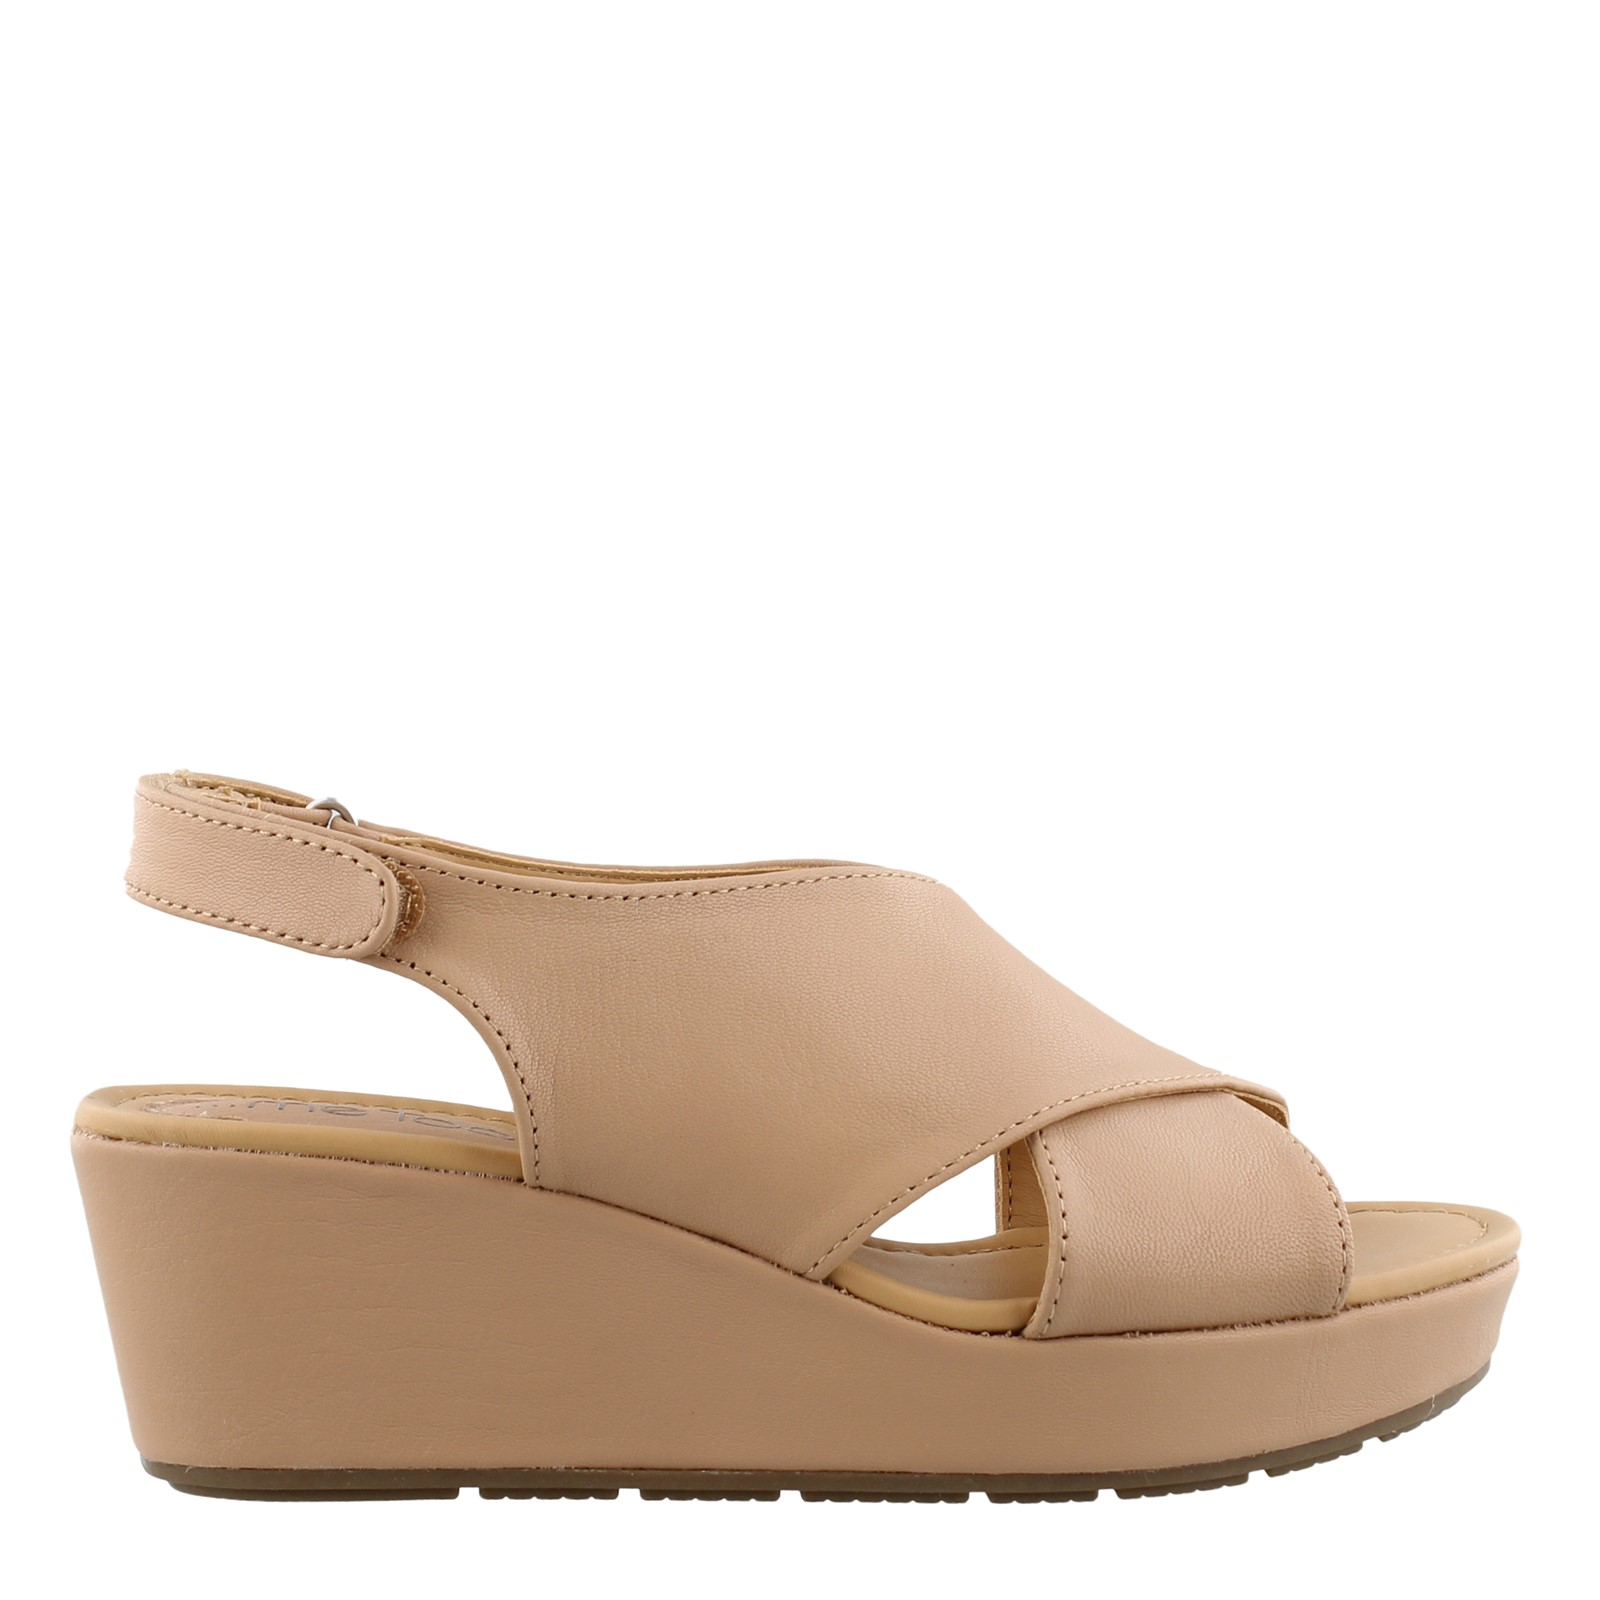 b41f11478b Home; Women's Me Too, Arena 4 Platform Sandal. Previous. default view ...